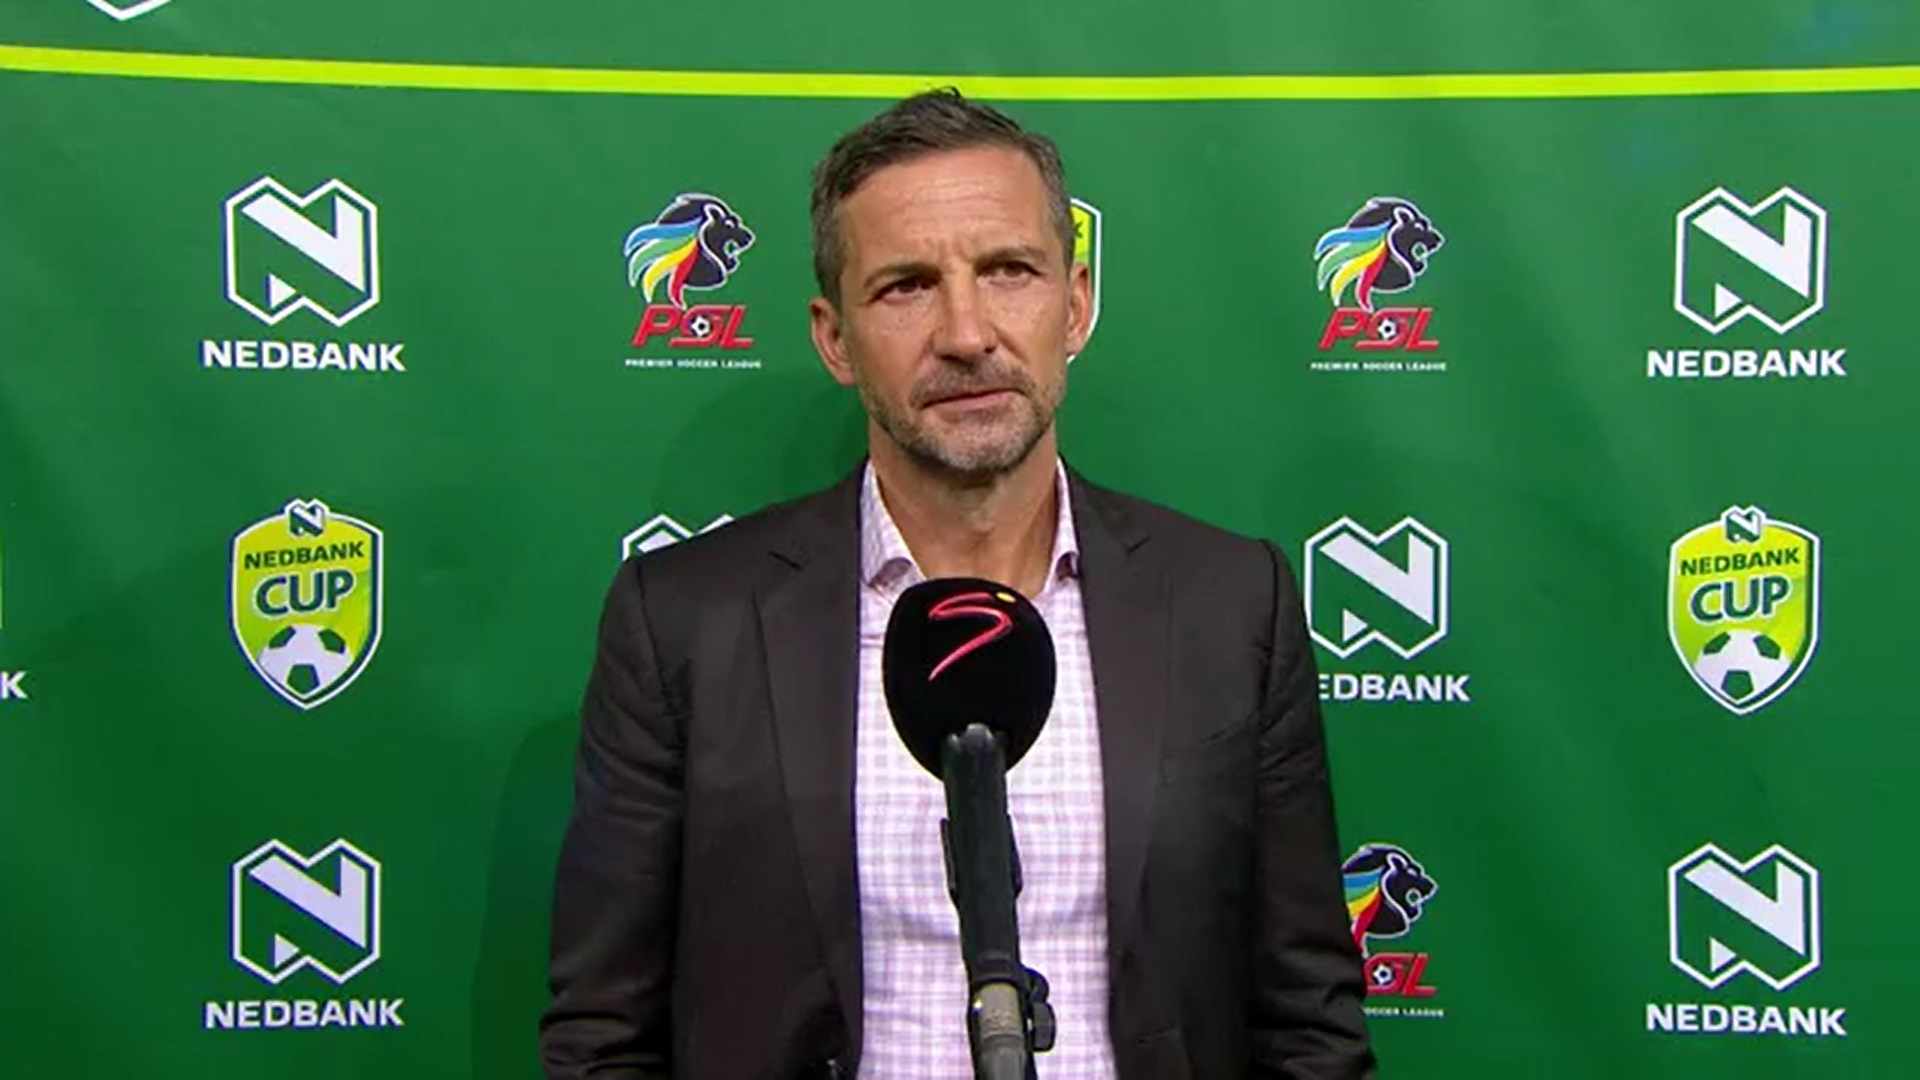 Nedbank Cup | QF | Mamelodi Sundowns v Orlando Pirates | Post-match interview with Josef Zinnbauer